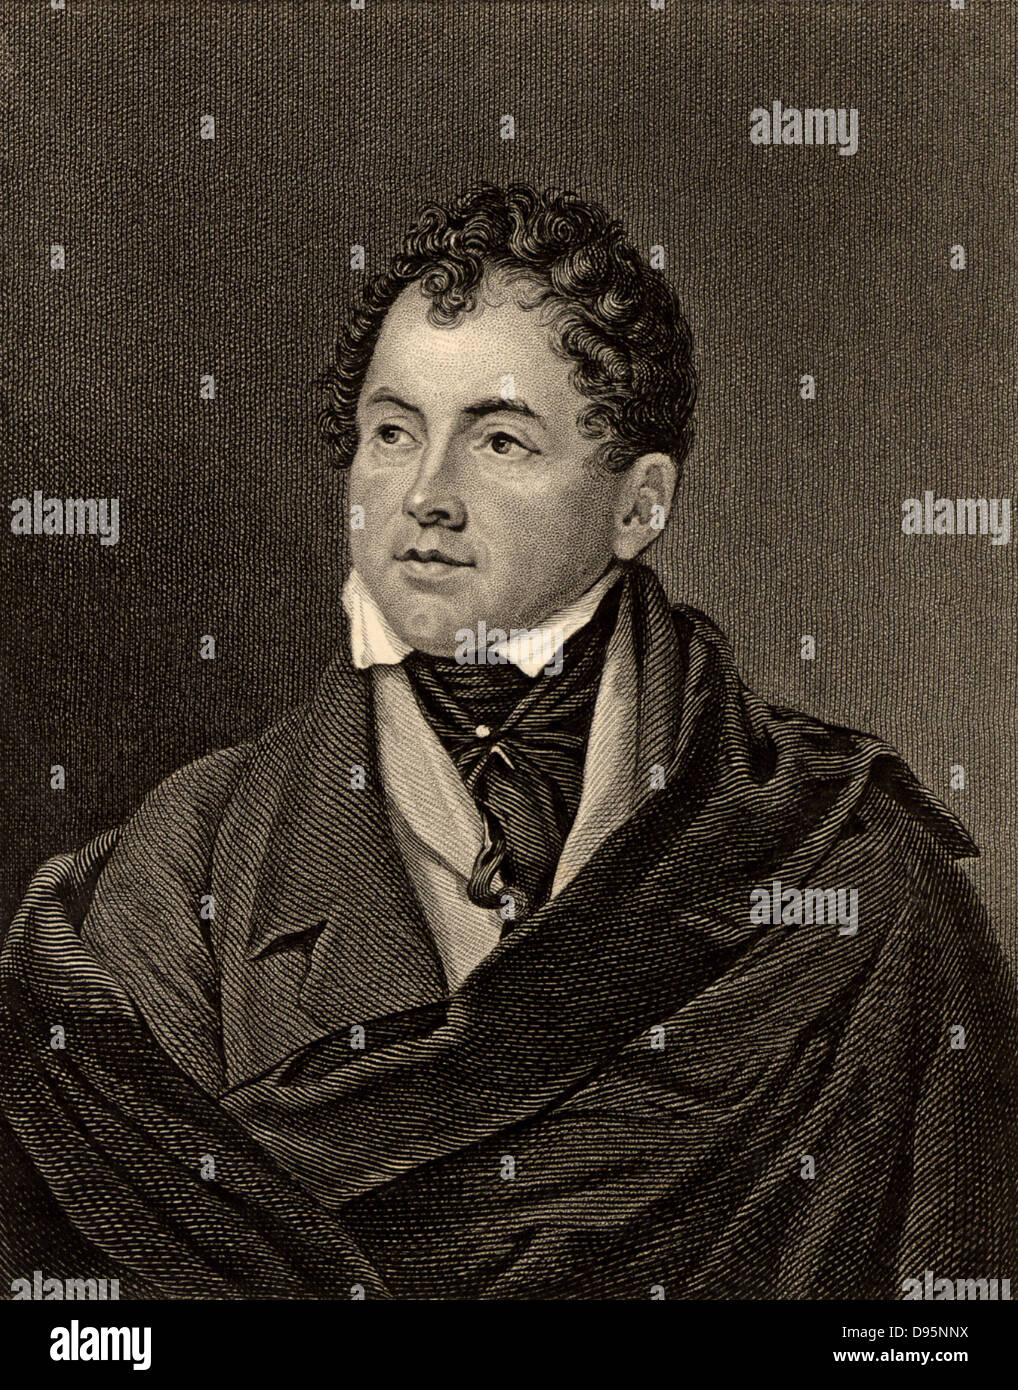 Thomas Moore (1779-1852) Irish-born poet and writer. Friend of Leigh Hunt, Lord John Russell and Lord Byron, whose - Stock Image